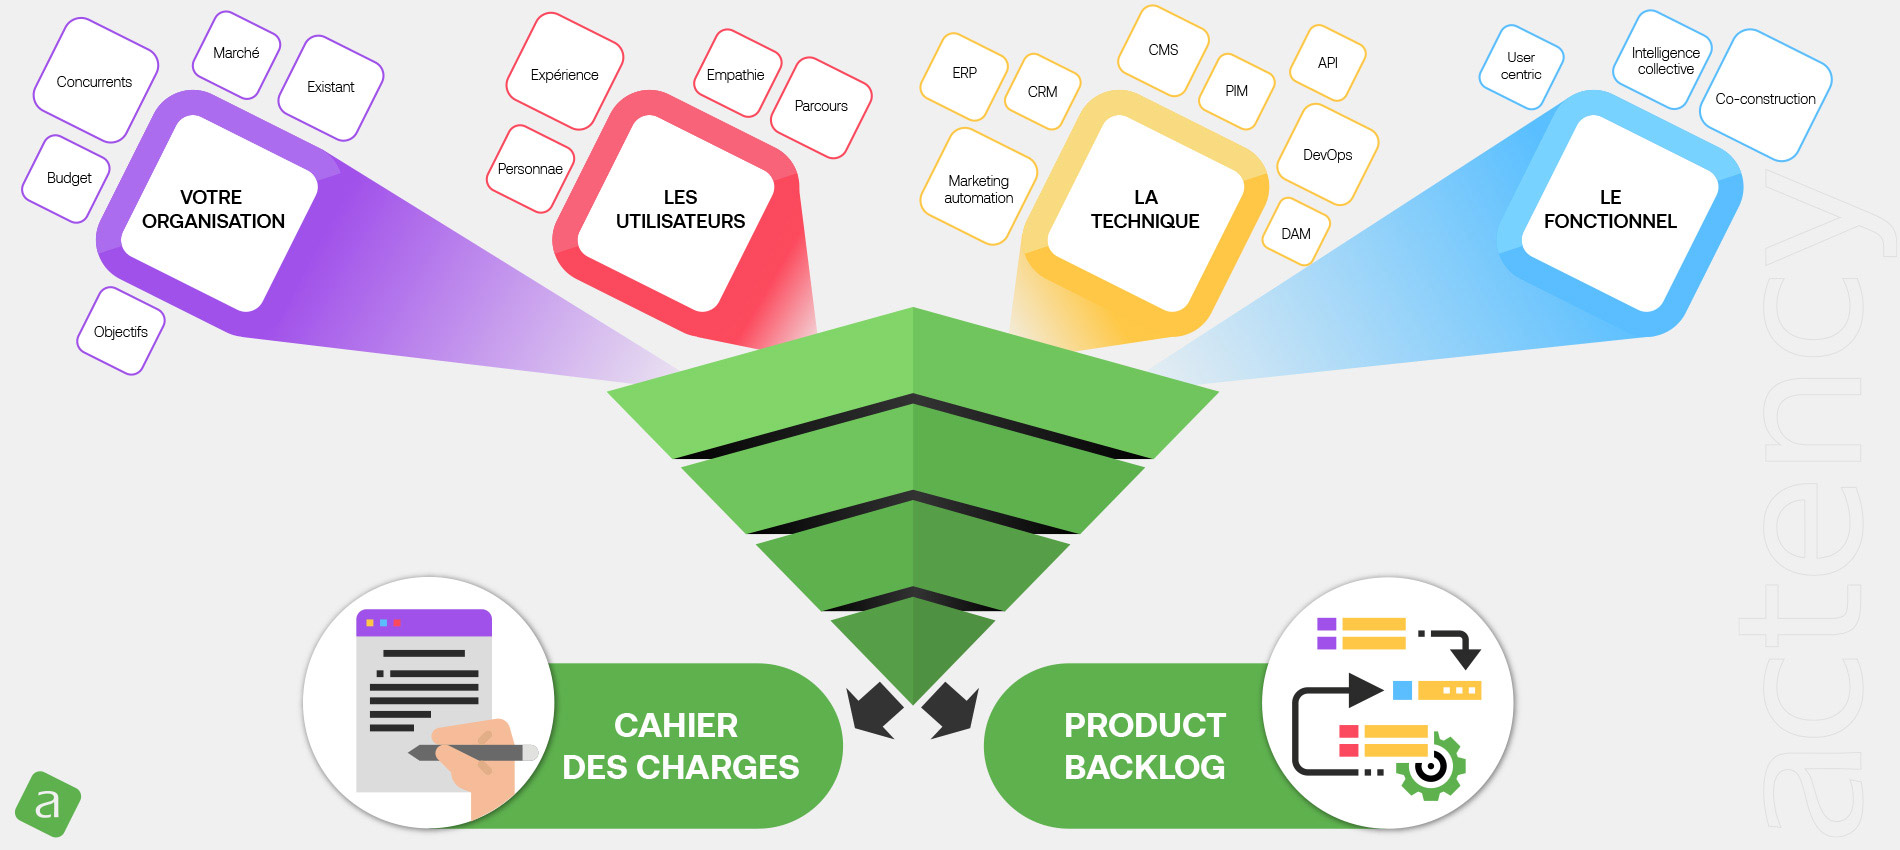 Actency - Conseil - Cahier des charges et product backlog